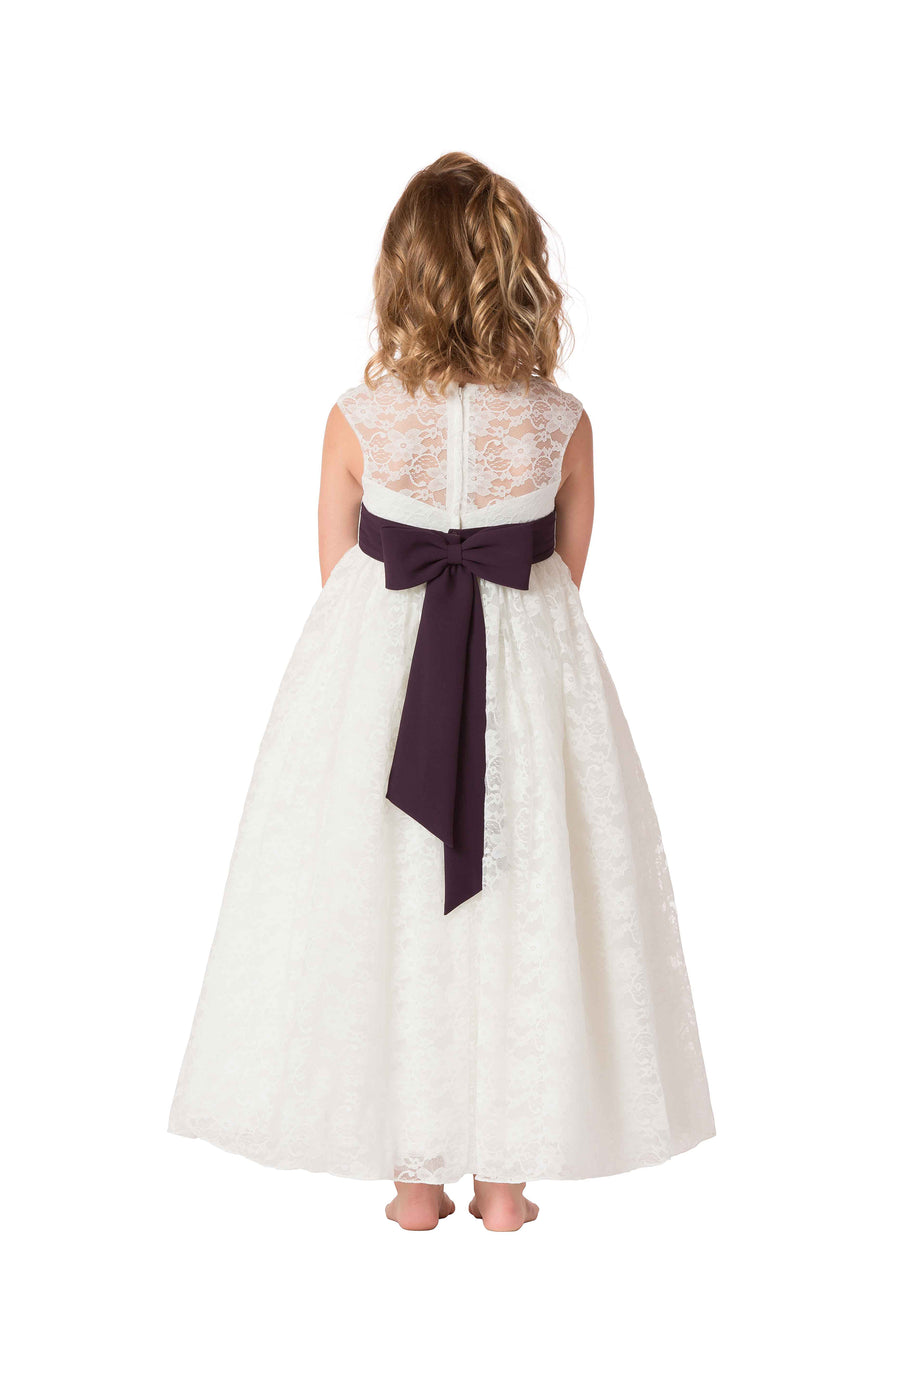 |Bari Jay F6817 Flower Girl Dress